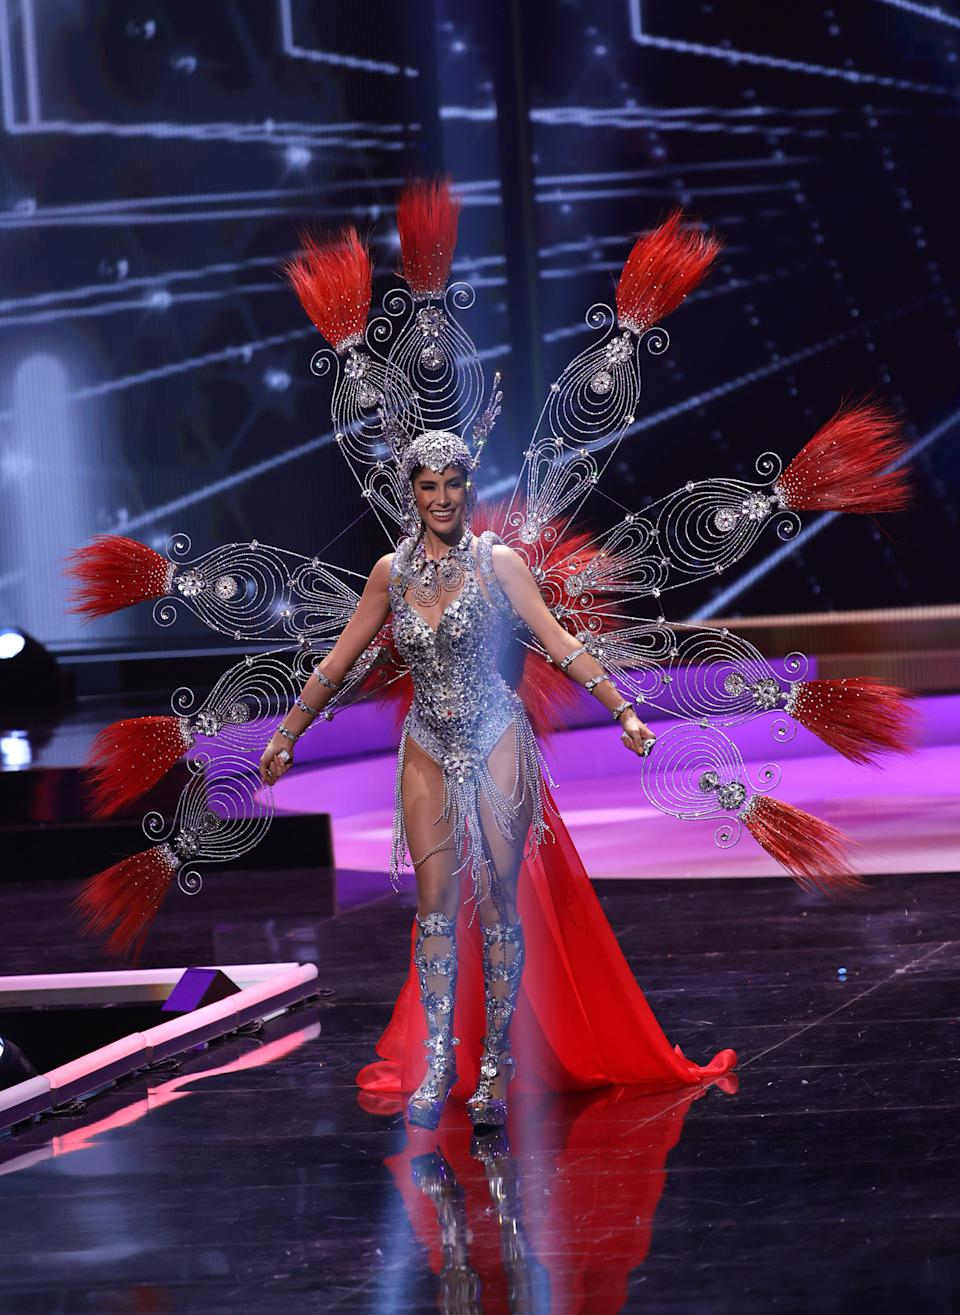 <p>Miss Universe Paraguay Vanessa Castro Guillén appears onstage at the Miss Universe 2021 - National Costume Show at Seminole Hard Rock Hotel & Casino on May 13, 2021 in Hollywood, Florida. (Photo by Rodrigo Varela/Getty Images)</p>